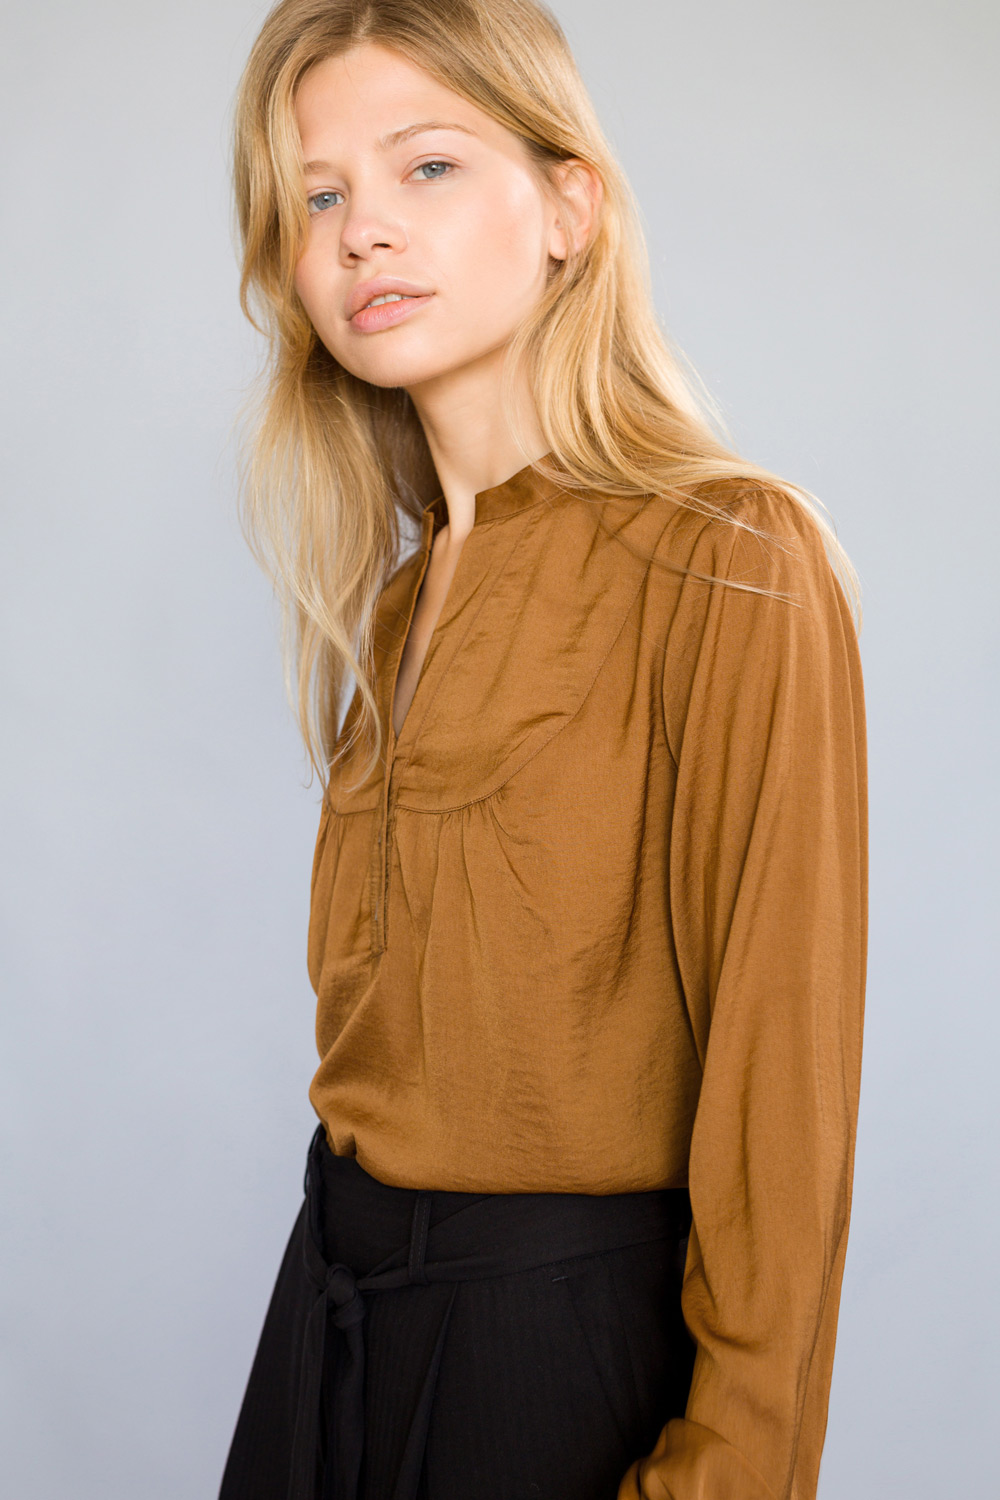 High Collar Blouse with Buttons